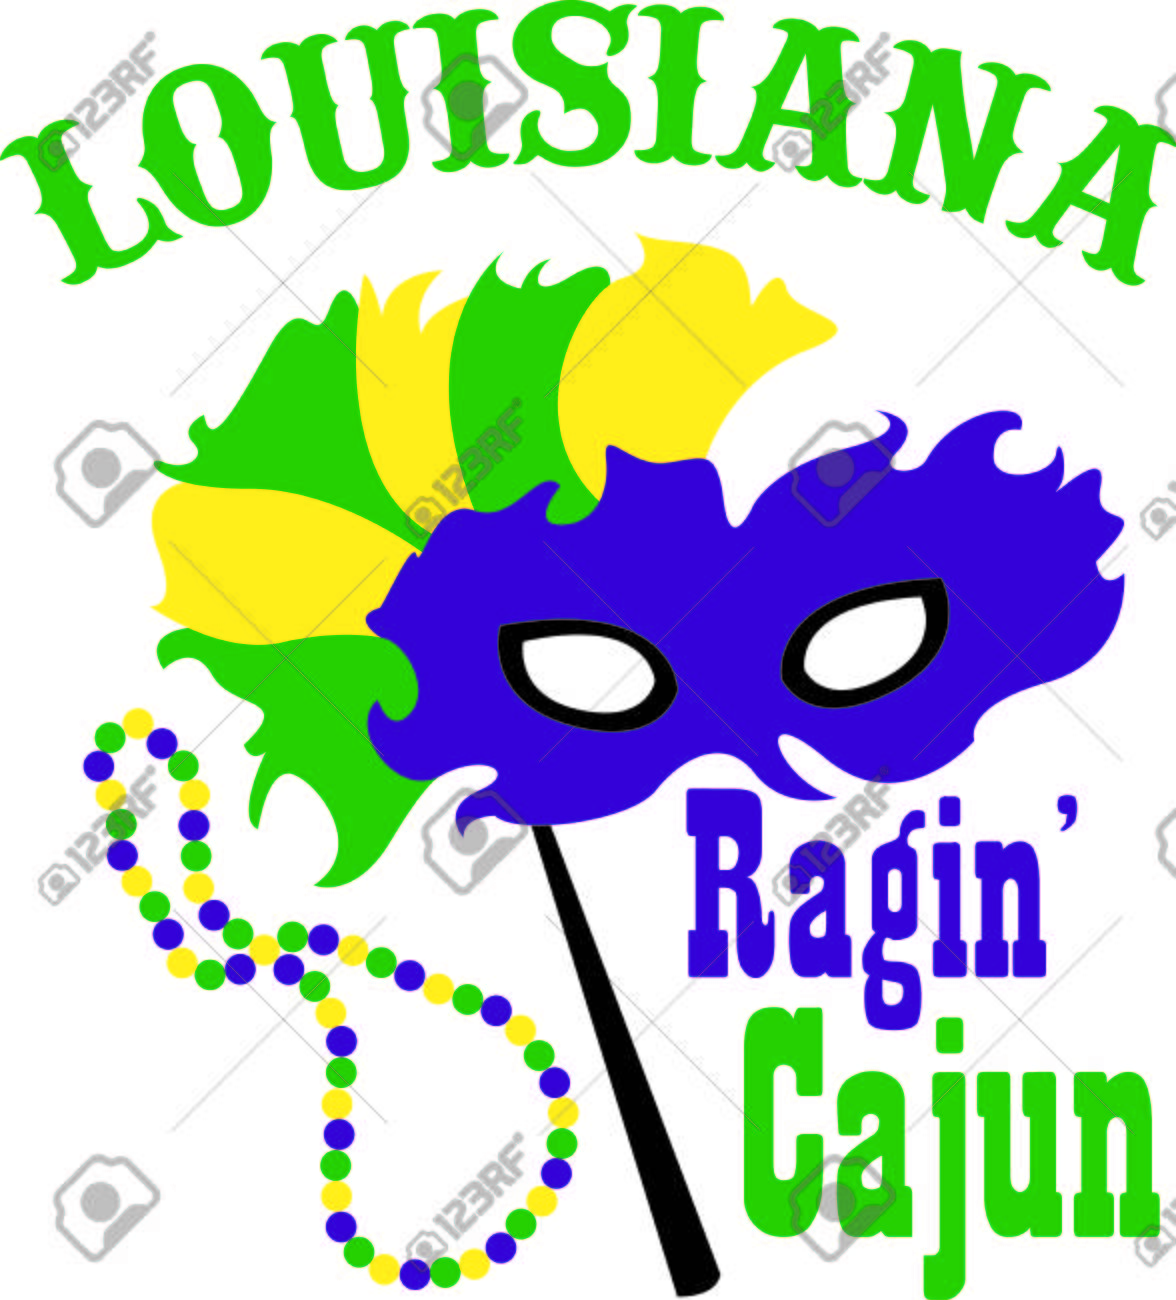 Use this masquerade mask for your Mardi Gras design. - 43681380